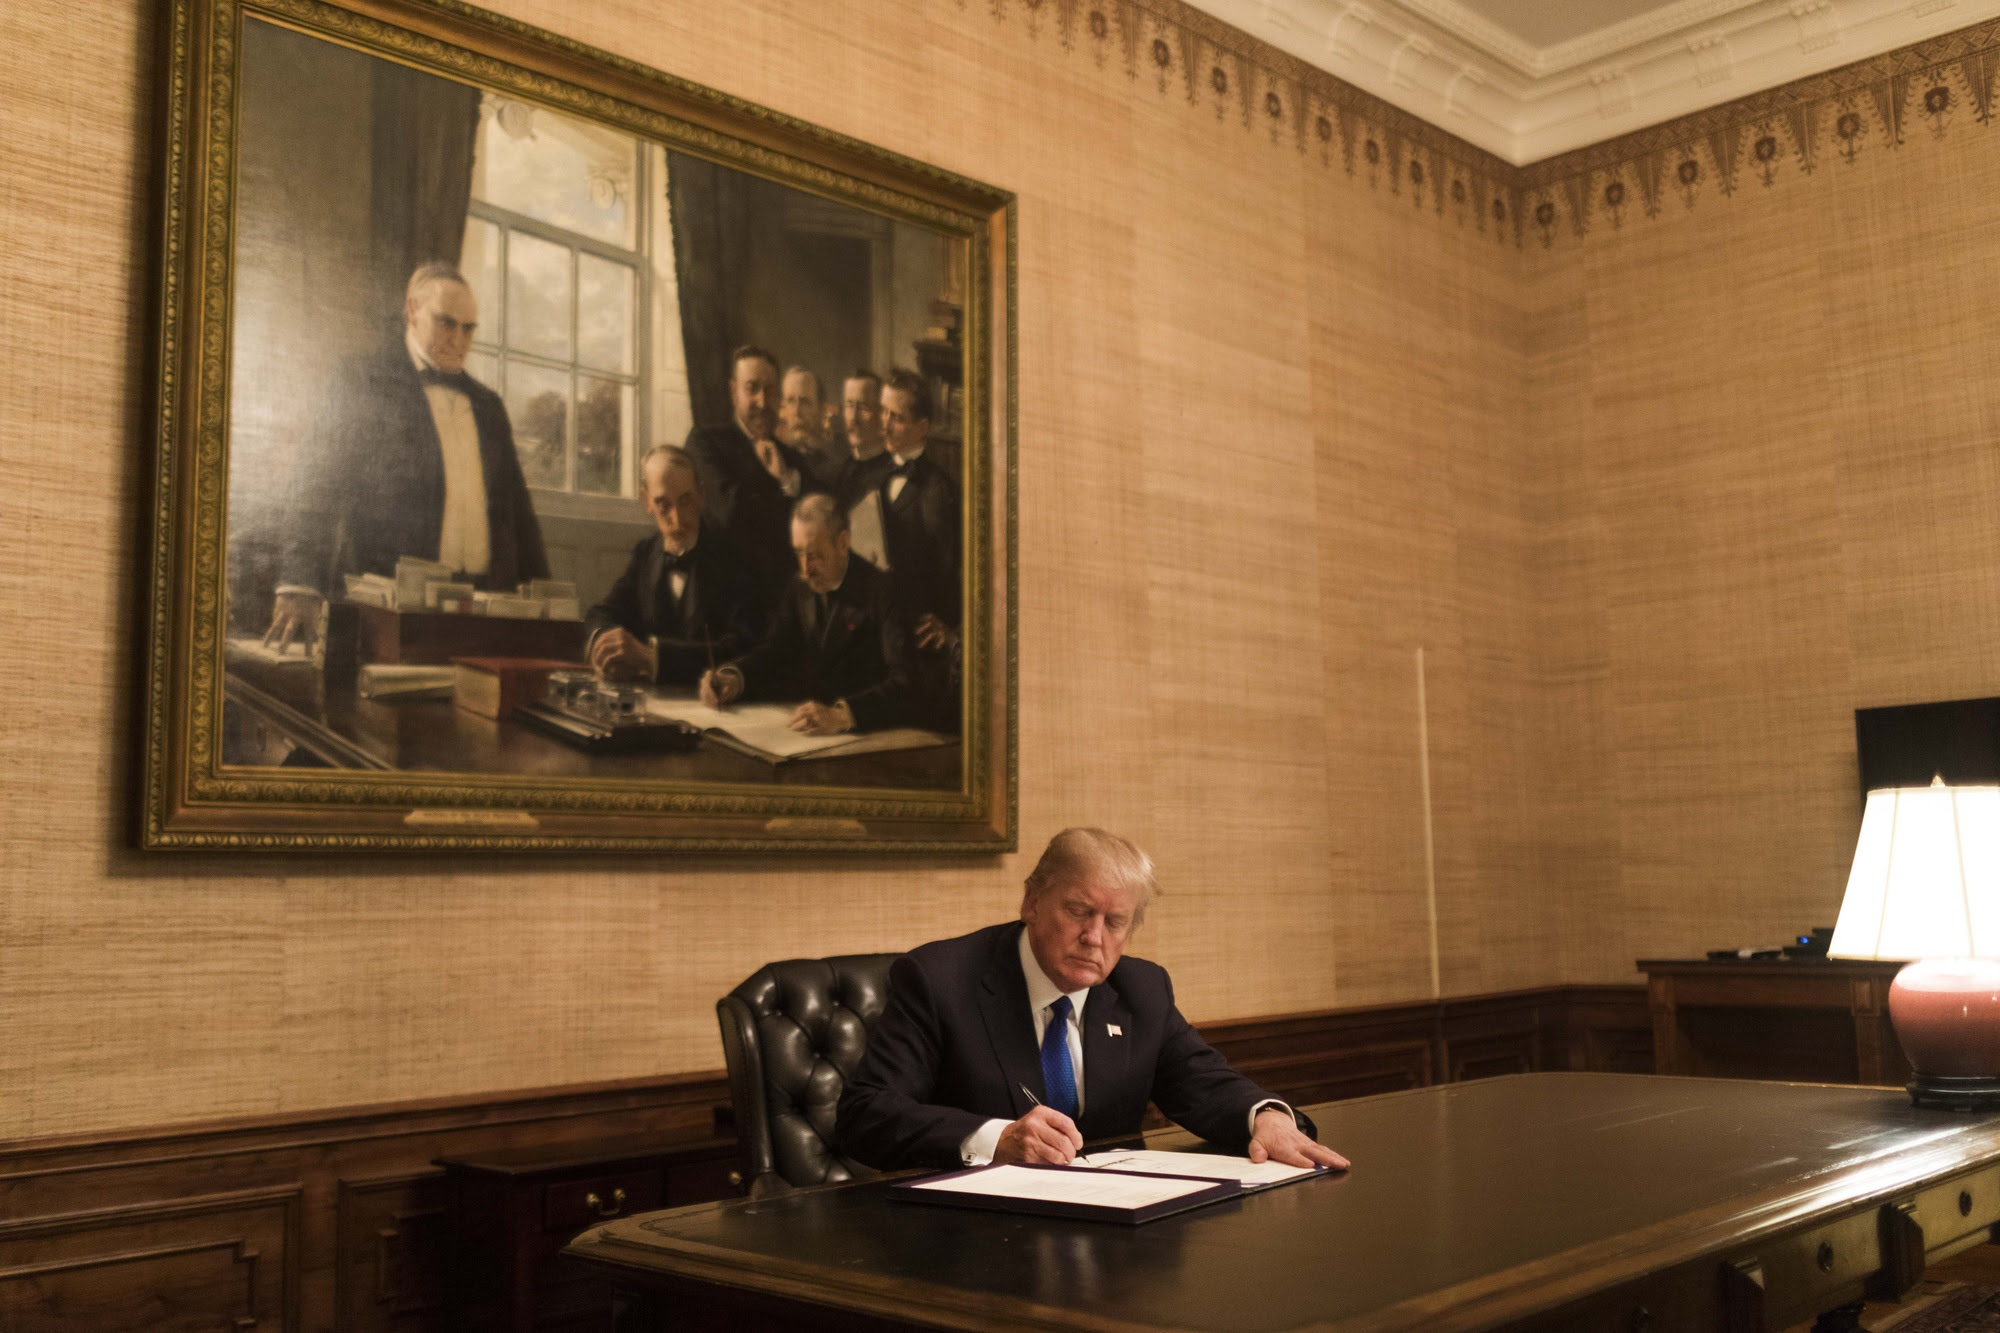 President Trump signs a bill in the Treaty Room at the White House